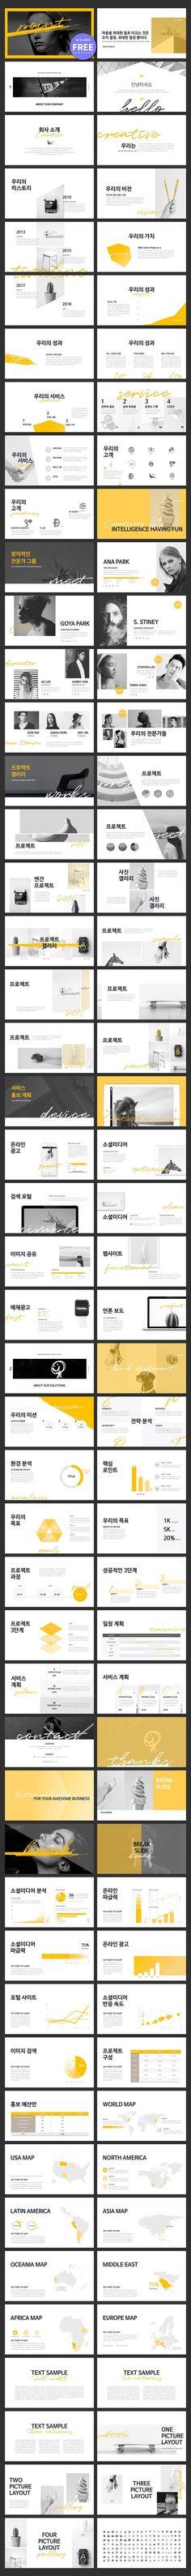 3 in 1 business jun 14 premium bundle powerpoint template 3 in 1 business jun 14 premium bundle powerpoint template creative powerpoint template and keynote toneelgroepblik Image collections